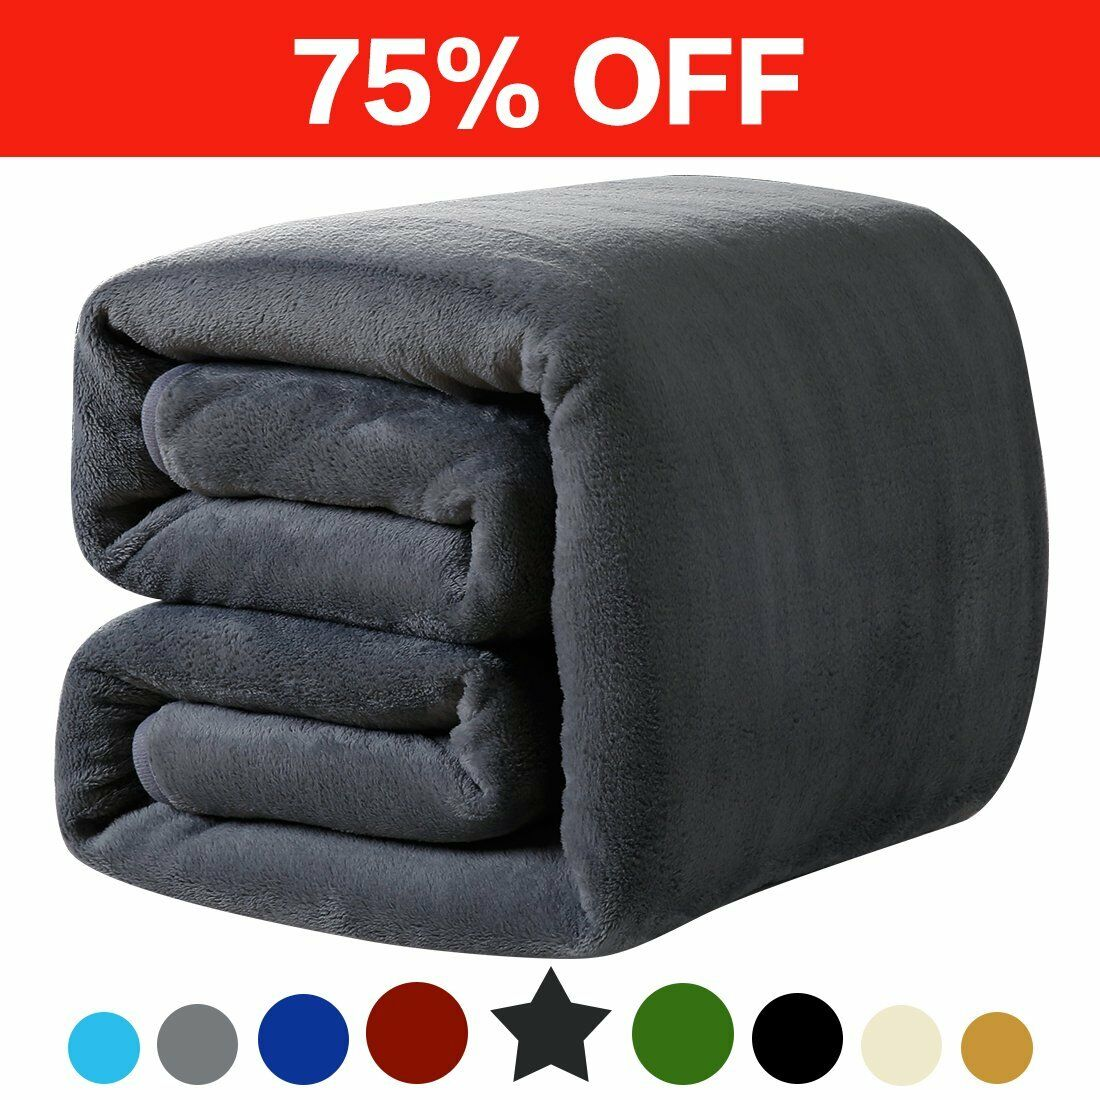 LEISURE TOWN Fleece Blanket King Size Soft Summer Cooling Breathable Luxury